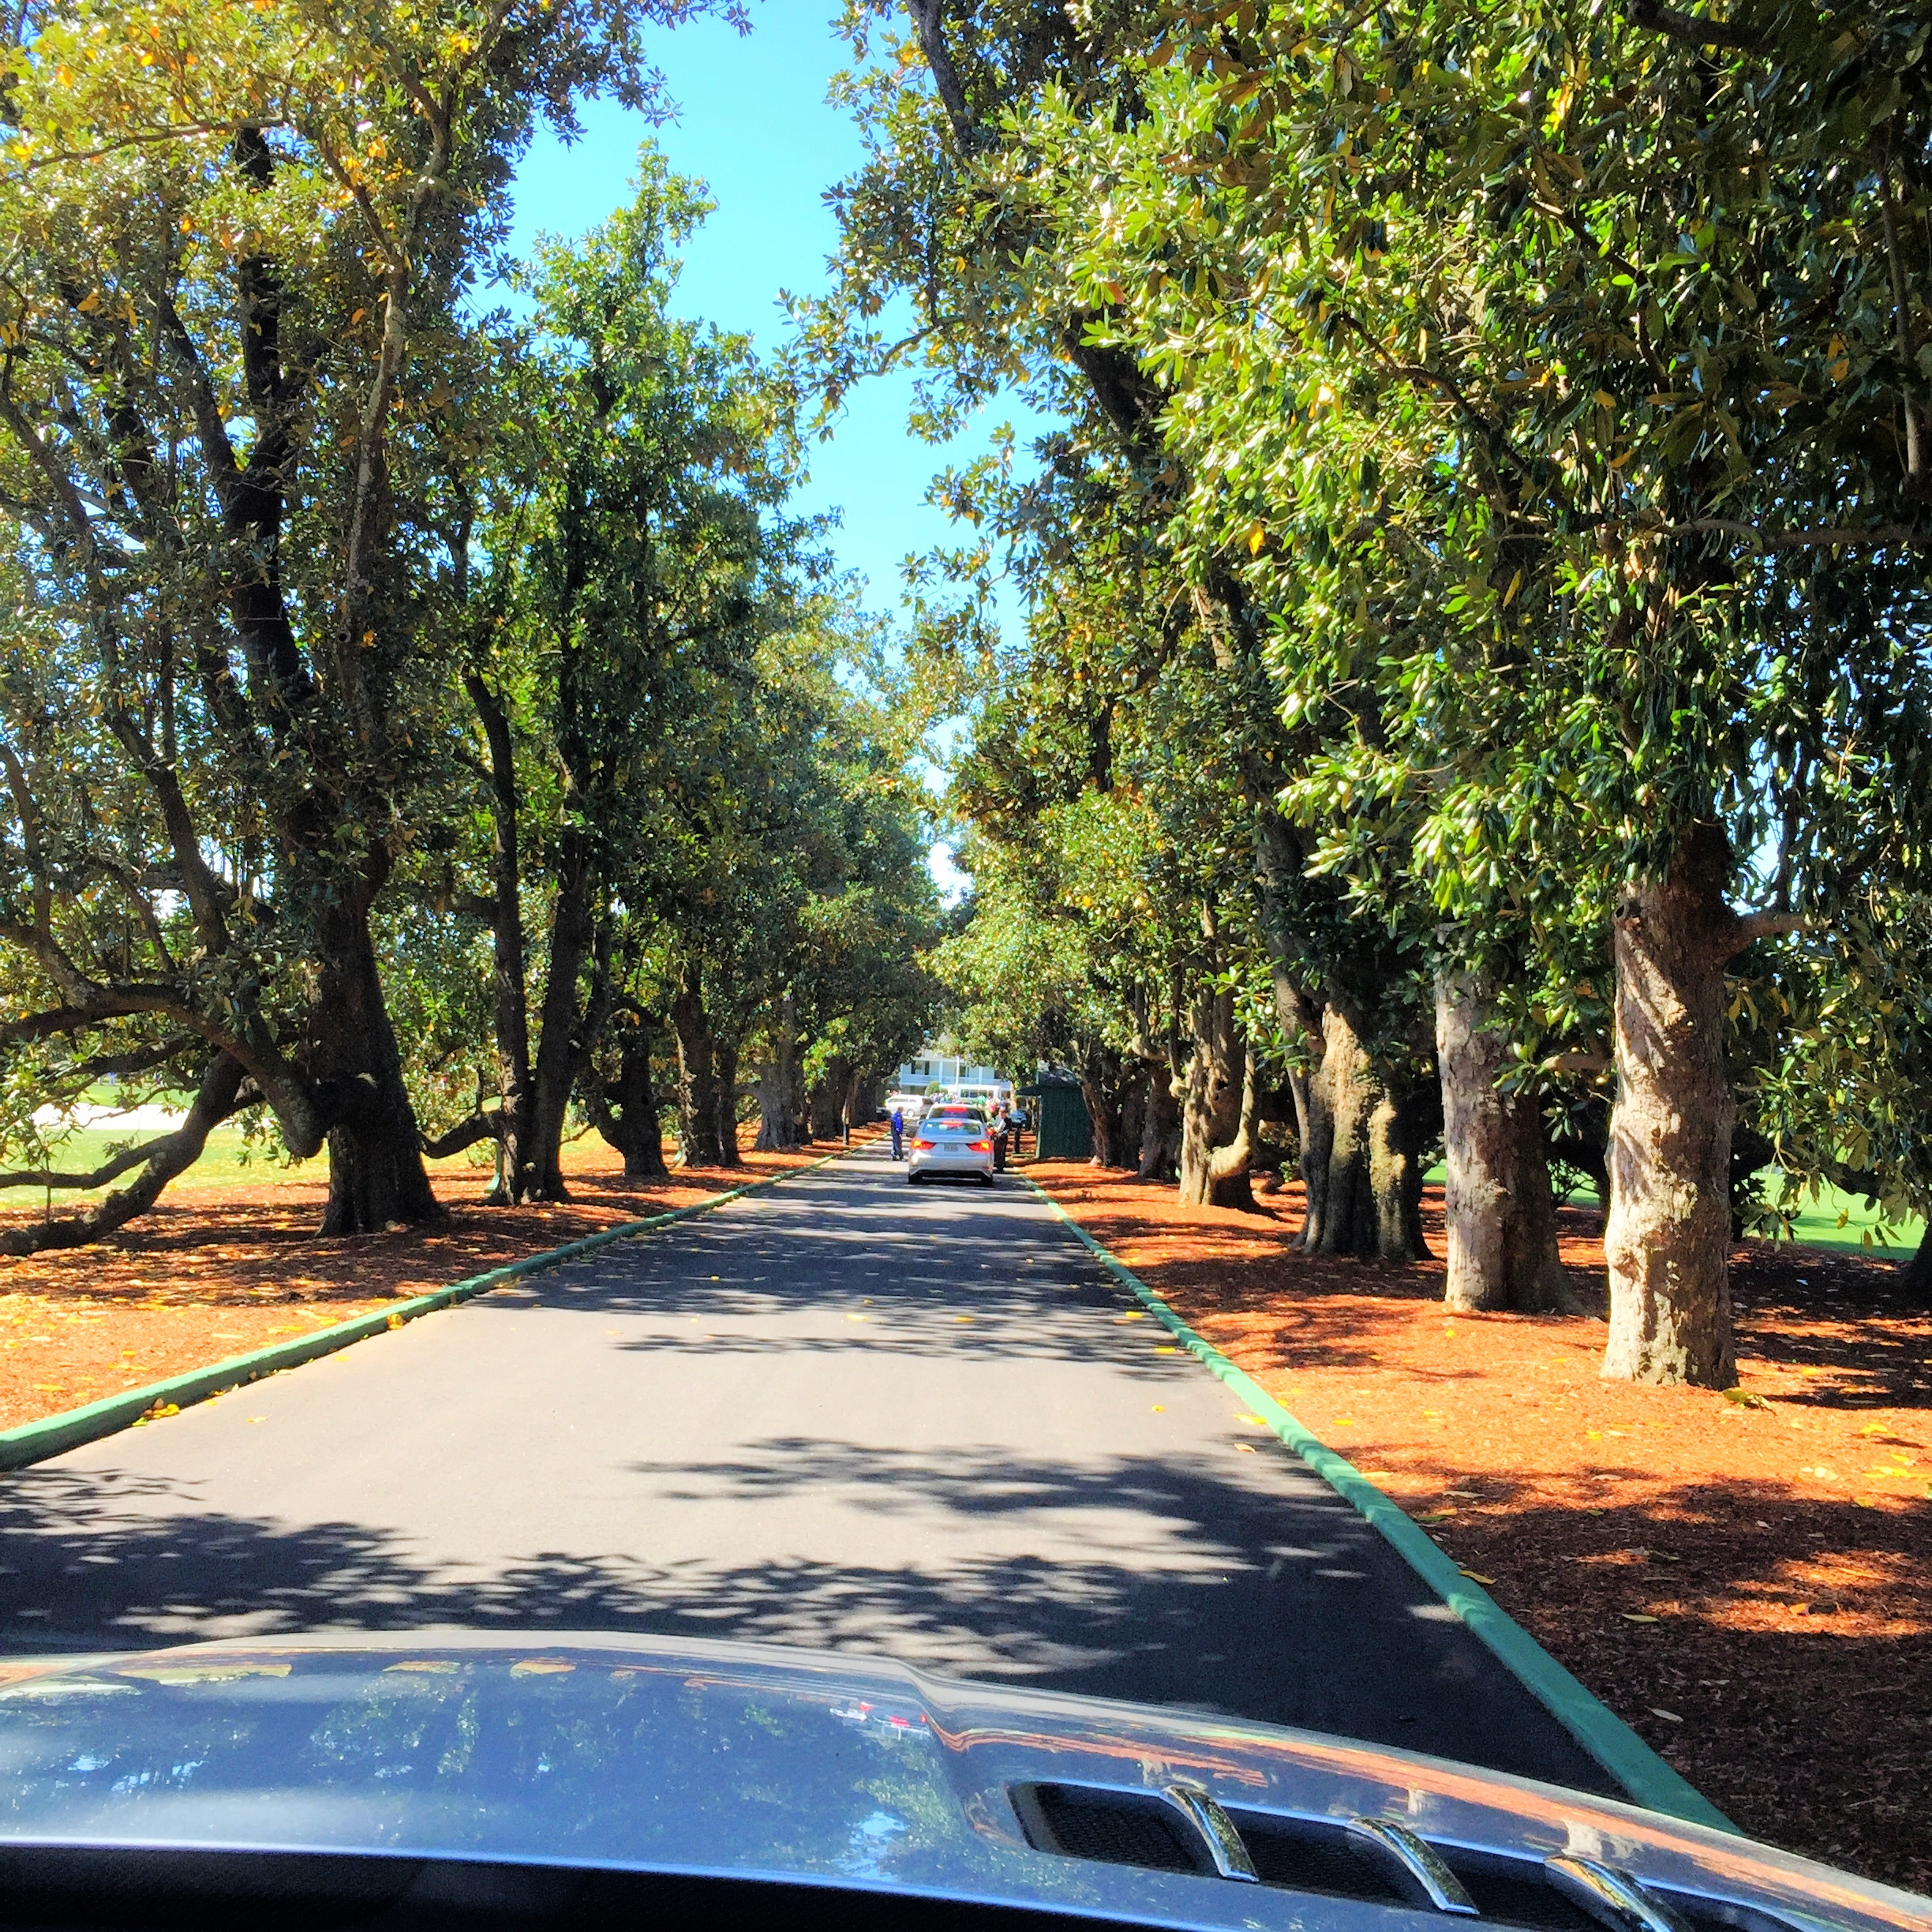 Driving down Magnolia Lane.